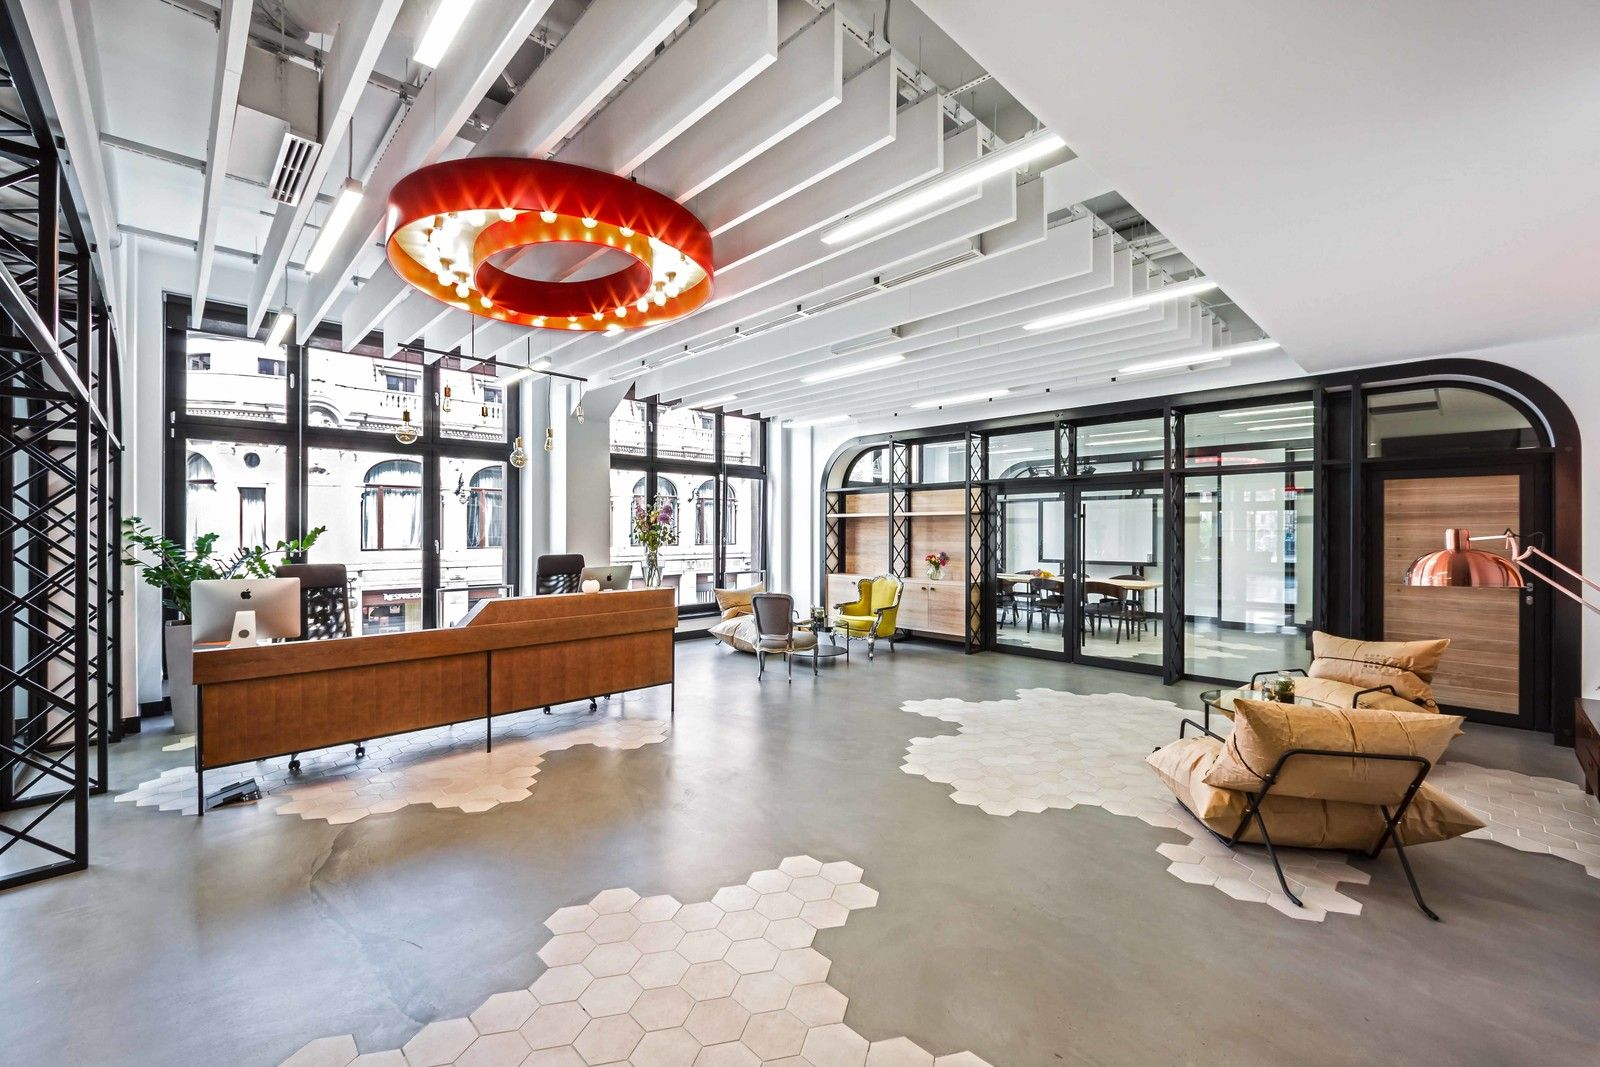 This Tech Office Is a Brilliant Mishmash of Styles Opera